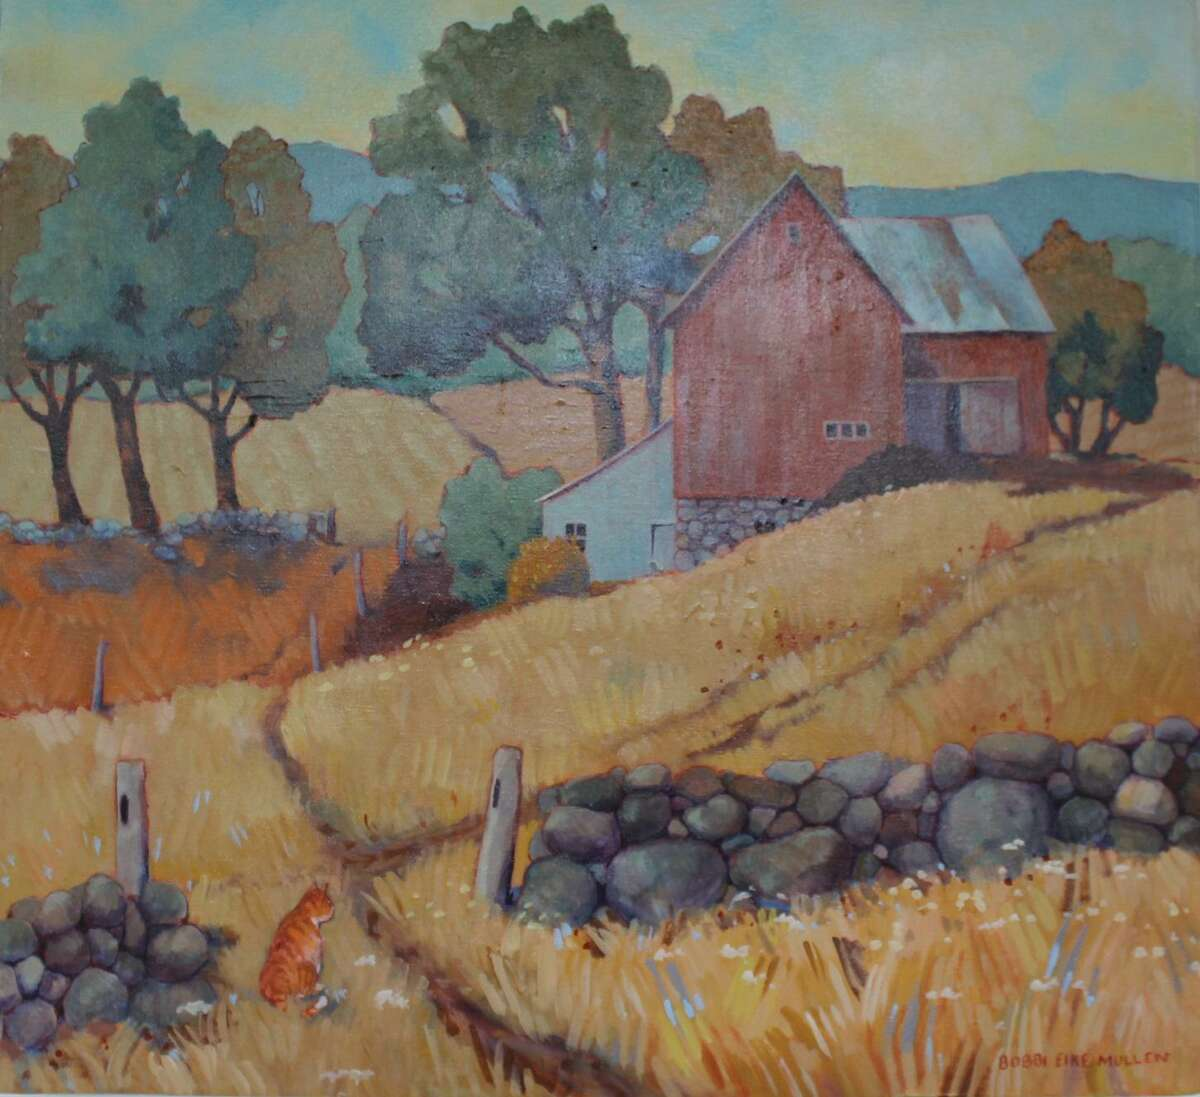 The 75th annual Wilton Artists' Summer Show Exhibition/Reception runs July 12 through Aug. 29 at the Wilton Library, 137 Old Ridgefield Road, Wilton. For more information, visit wiltonlibrary.org.